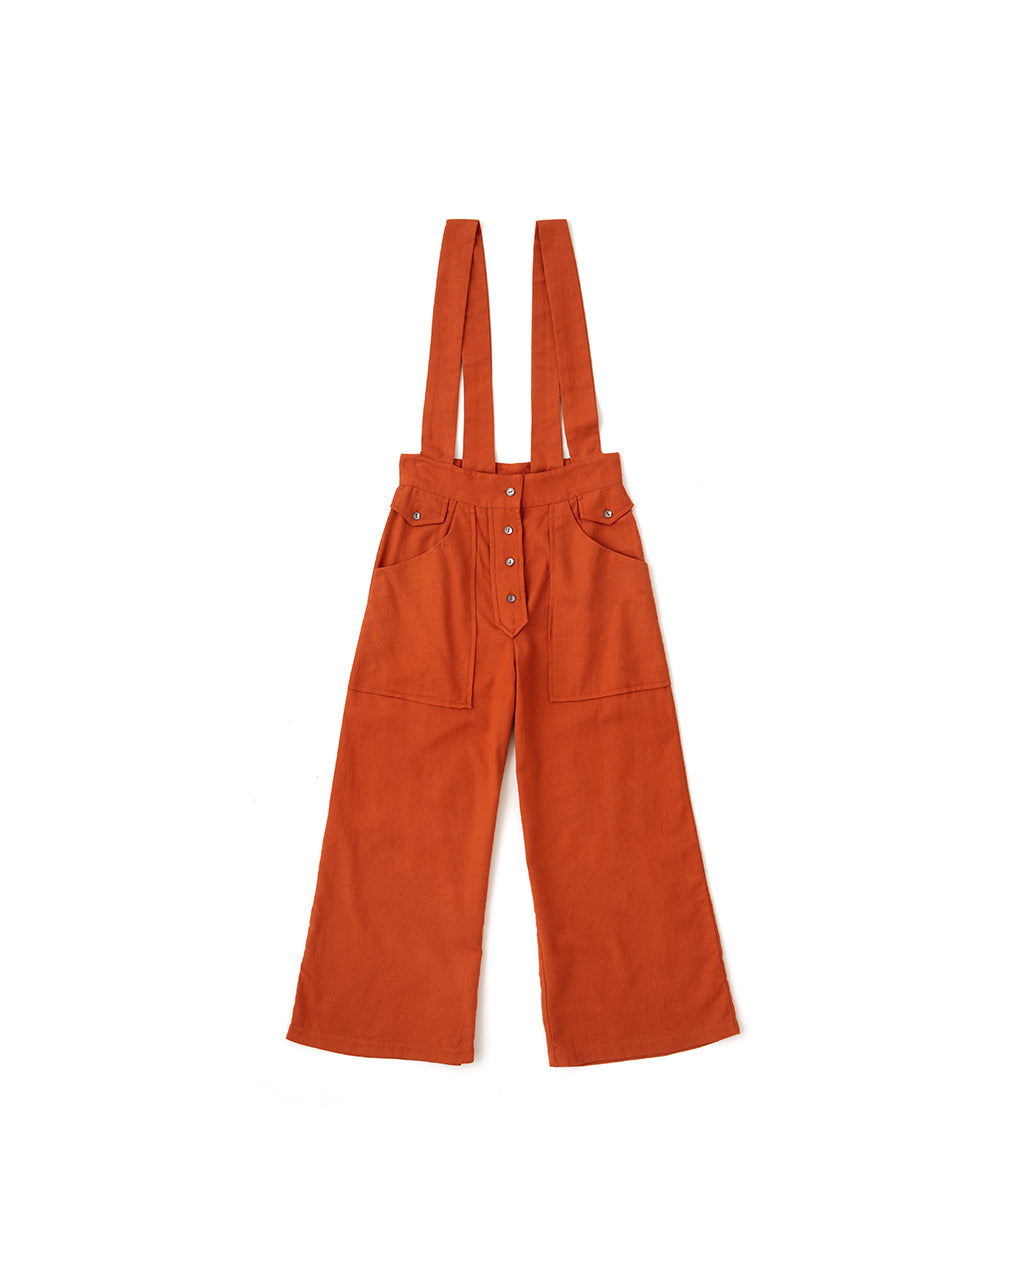 flat view of rust colored overalls with snaps and pockets